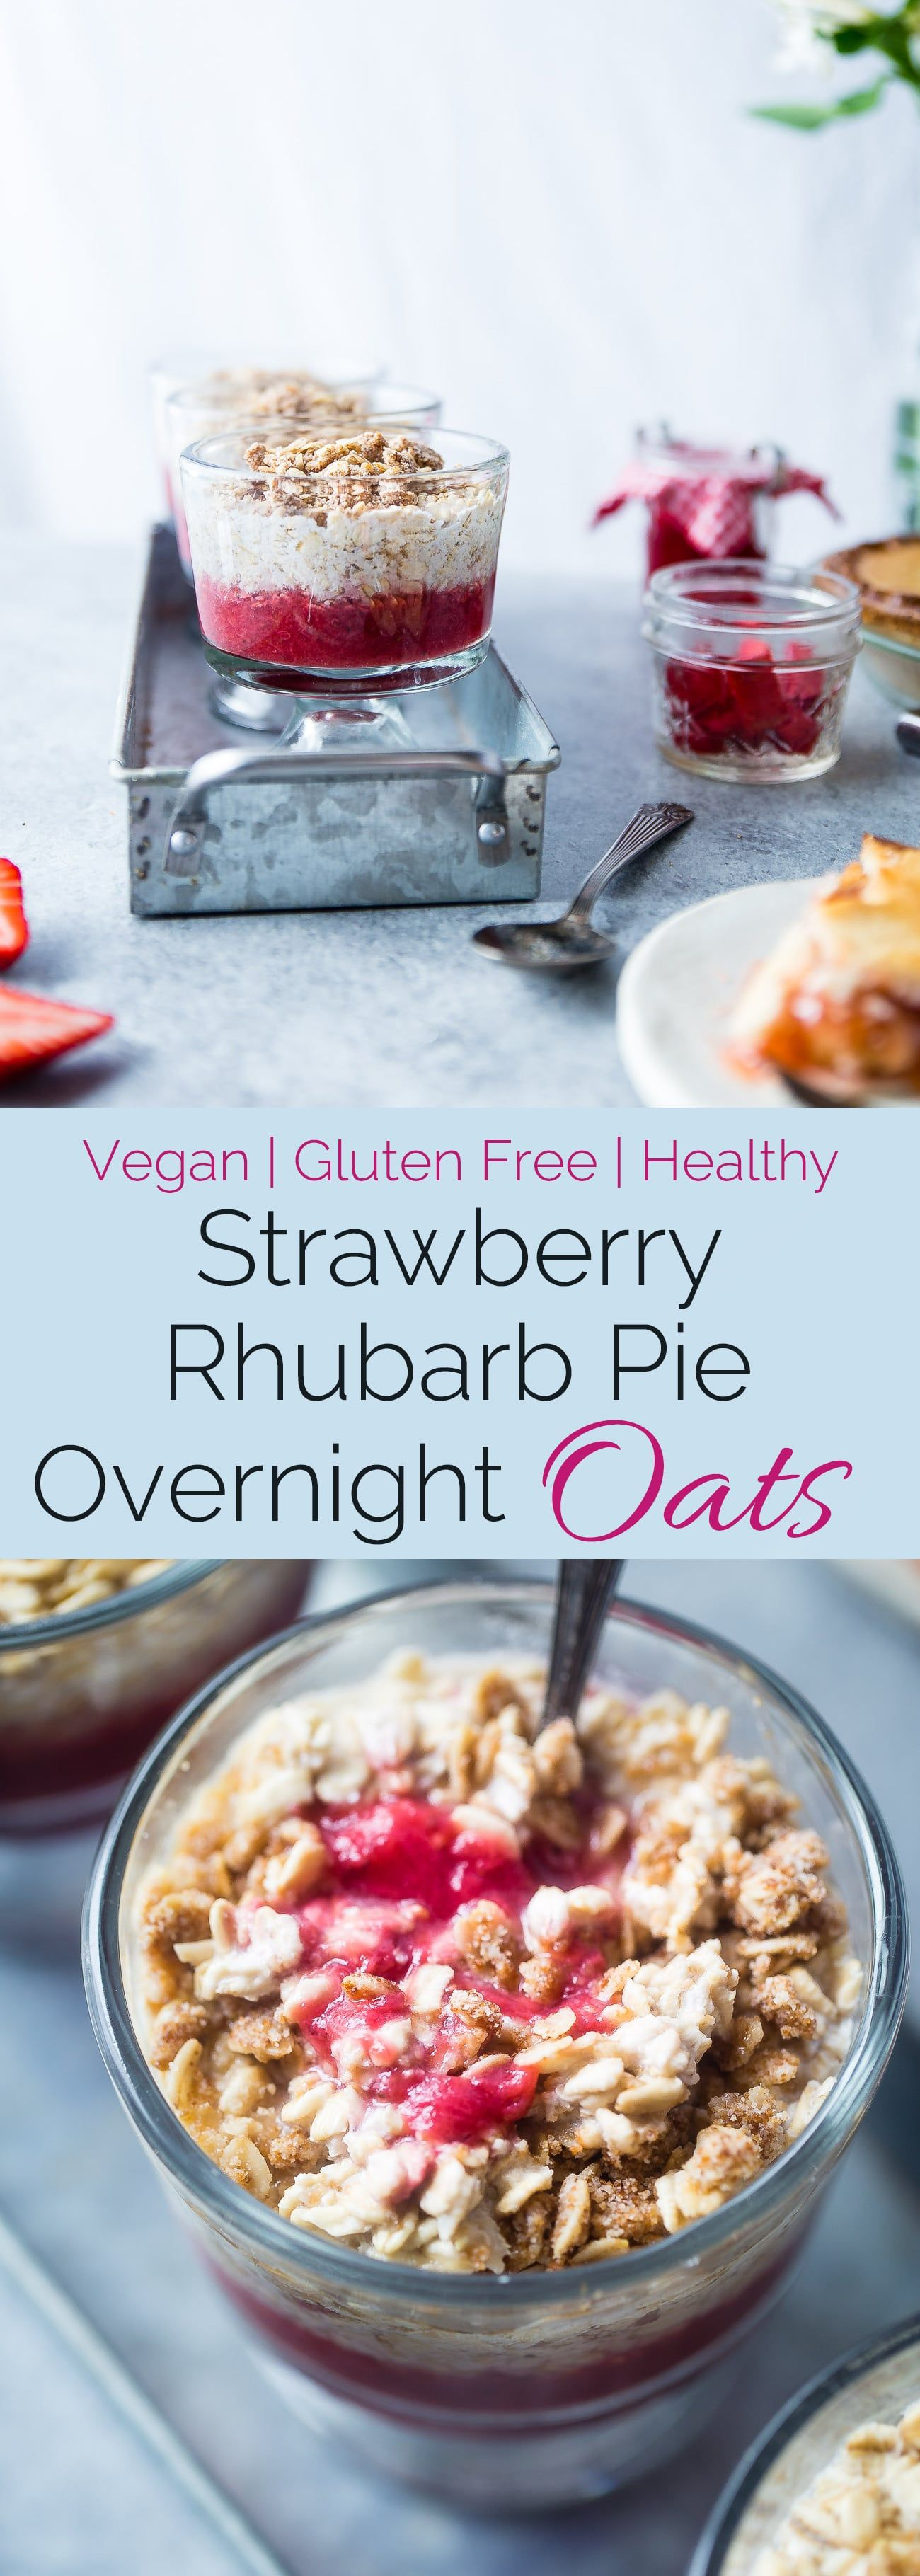 Strawberry Rhubarb Vegan Overnight Oats These Easy Gluten Free Overnight Oats Taste Like Waking Up To A Healthy Sl Vegan Overnight Oats Rhubarb Recipes Food